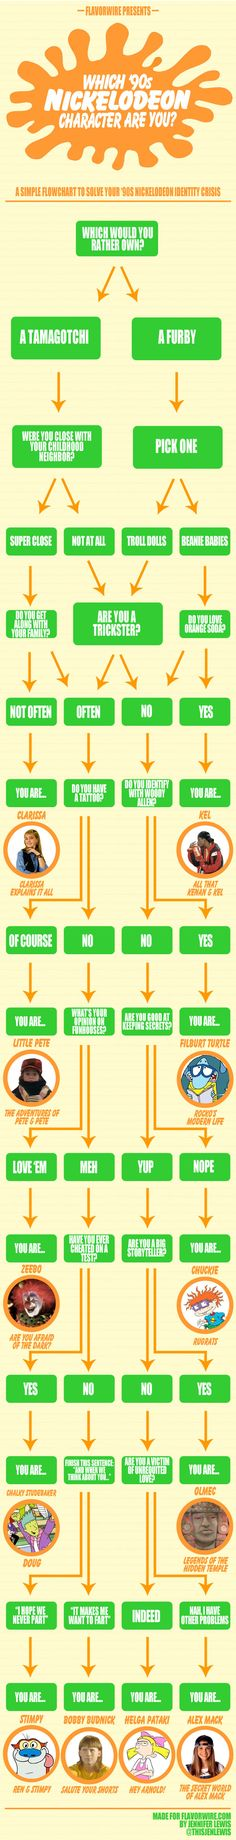 What 90s Nickelodeon character are you? Crazy detailed nostalgia, in flowchart form!